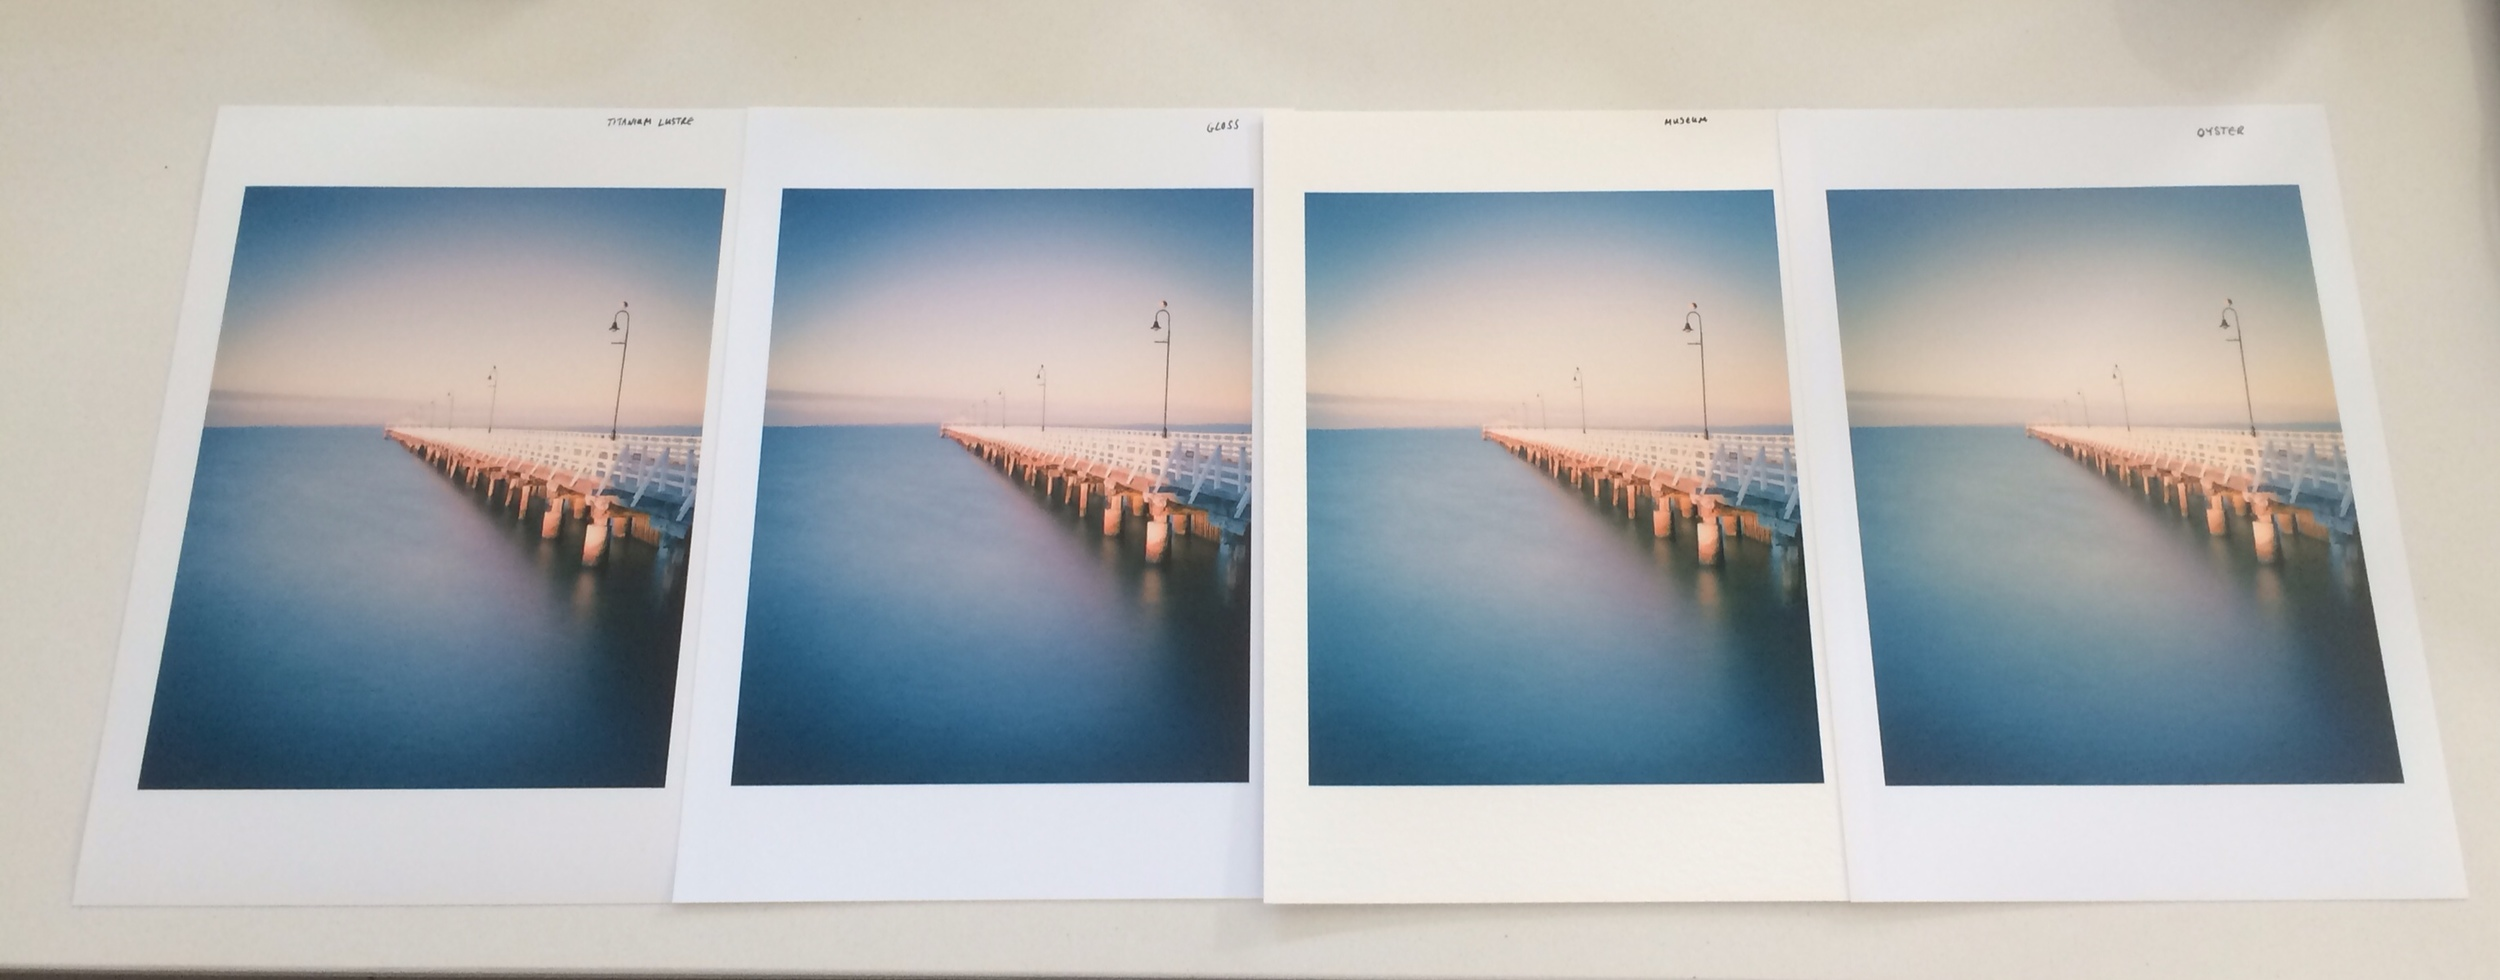 Shorncliffe Pier - Left to right on Titanium Lustre, Gloss, Museum and Oyster papers